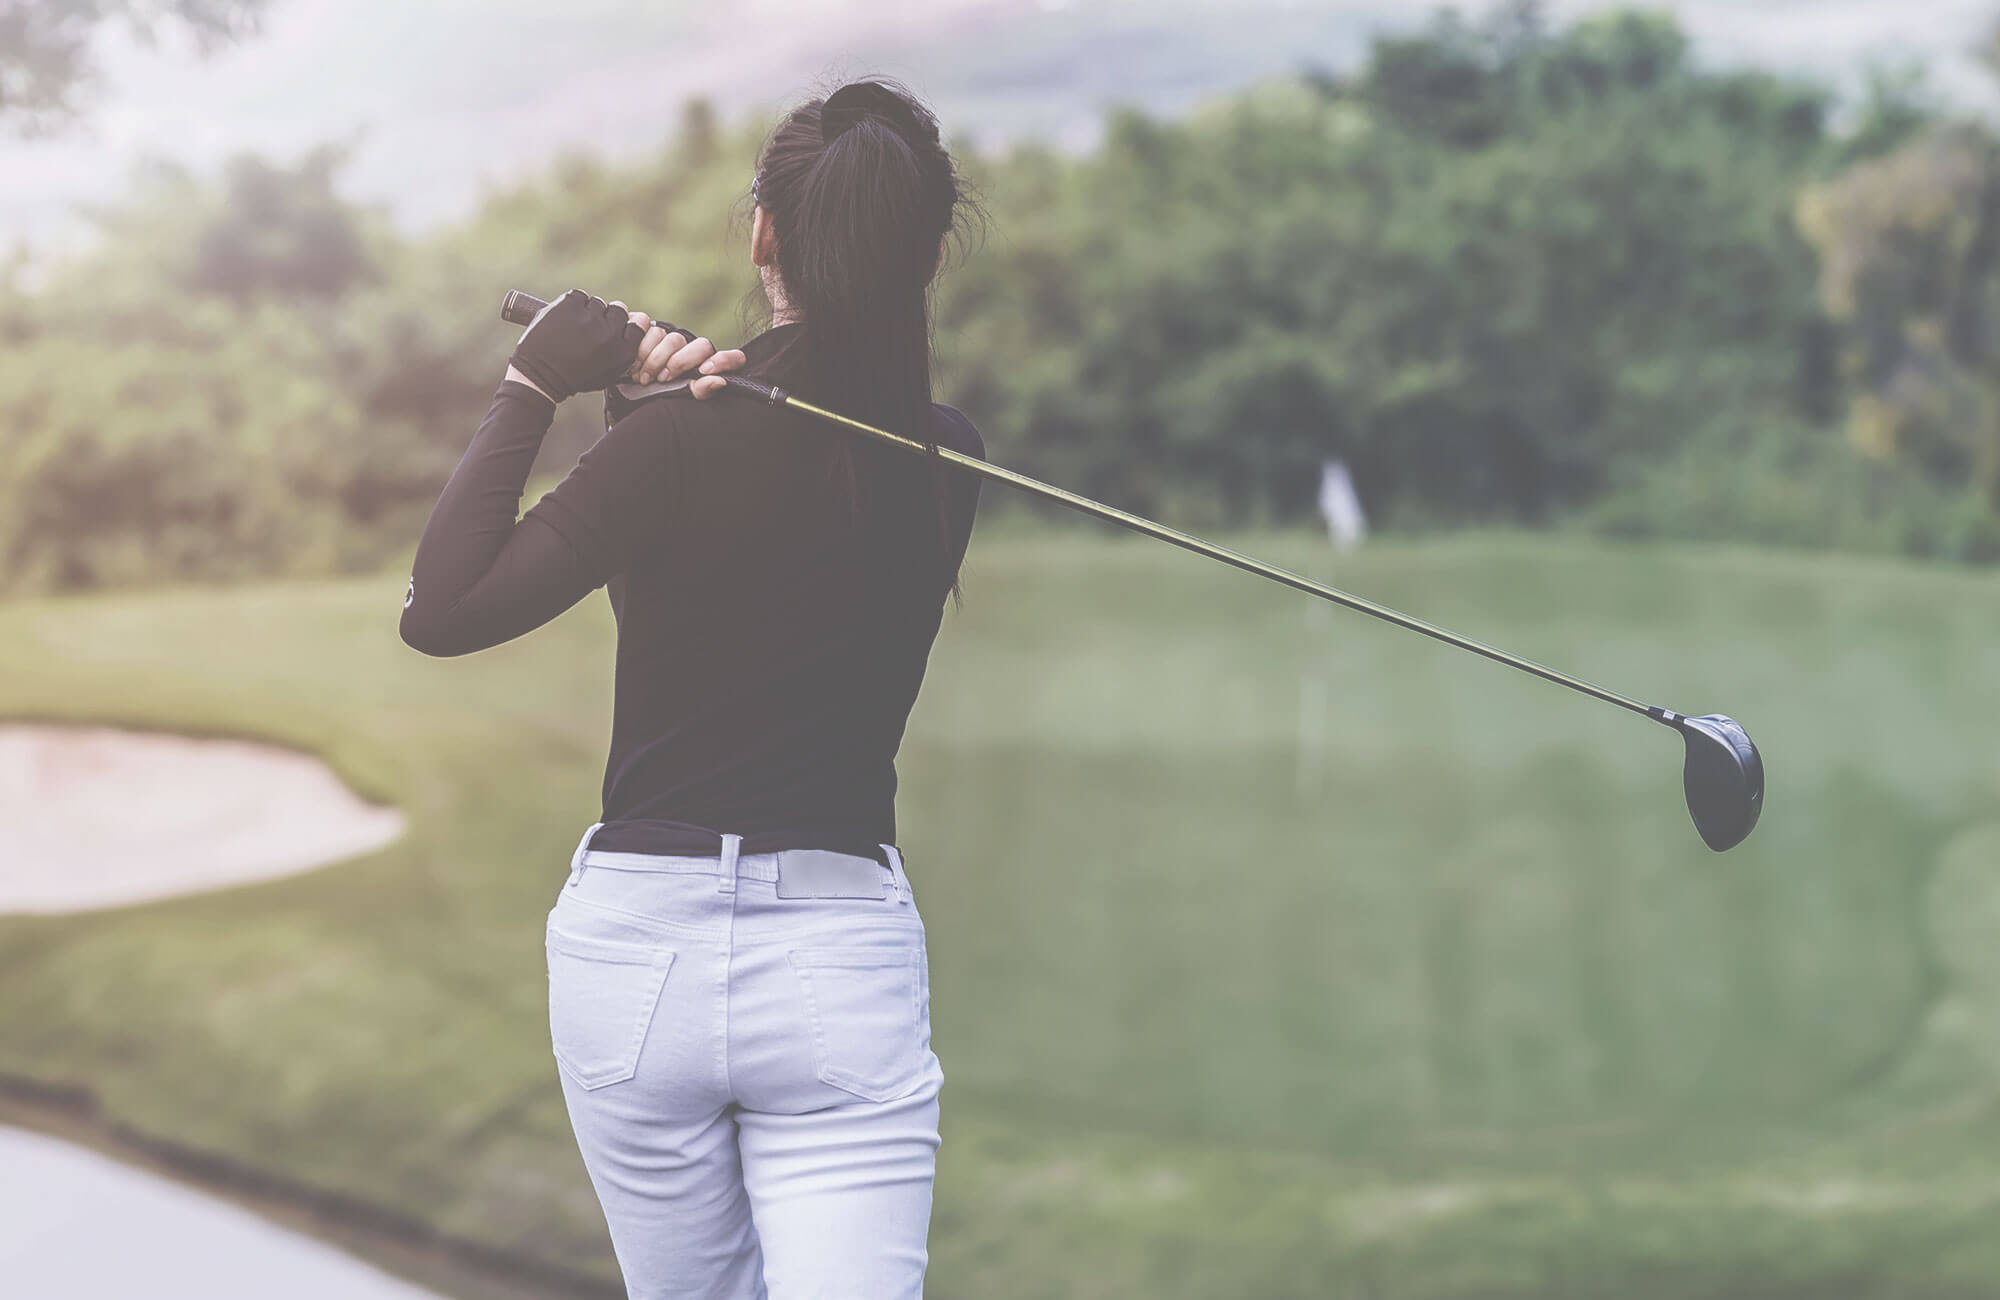 Female golfers should use clubs suited to them.